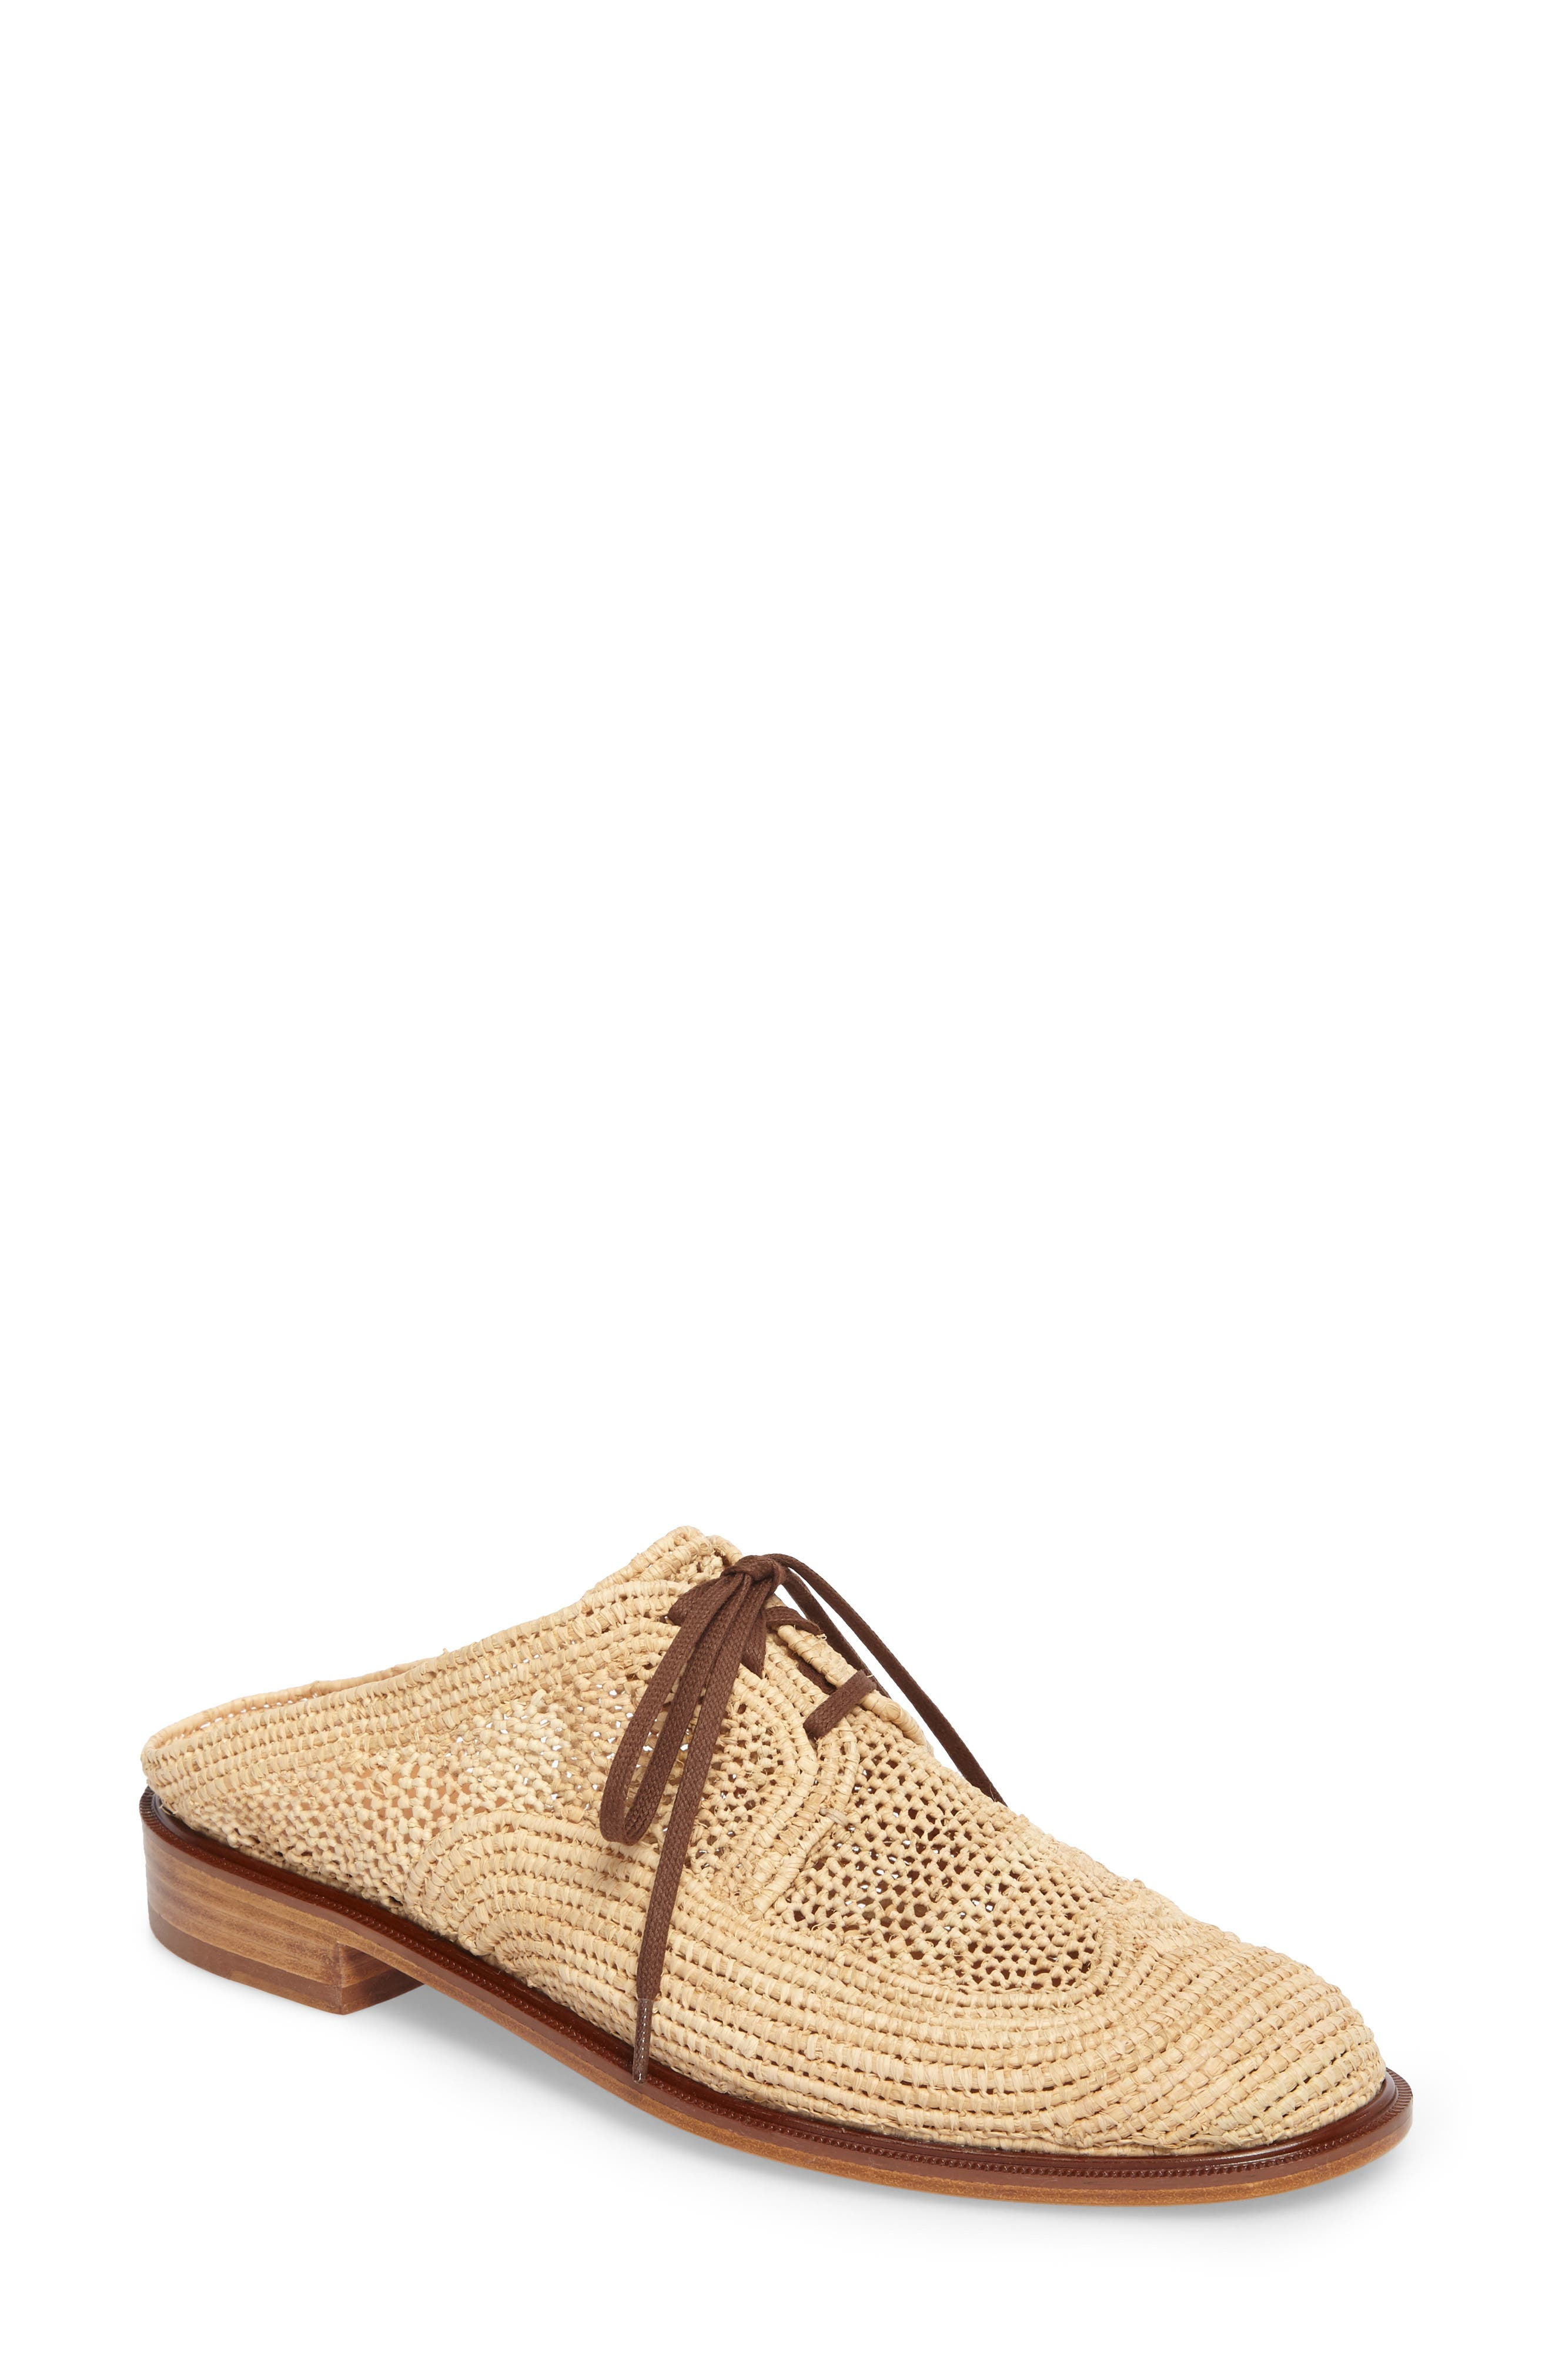 Alternate Image 1 Selected - Robert Clergerie Jaly Woven Loafer Mule (Women)